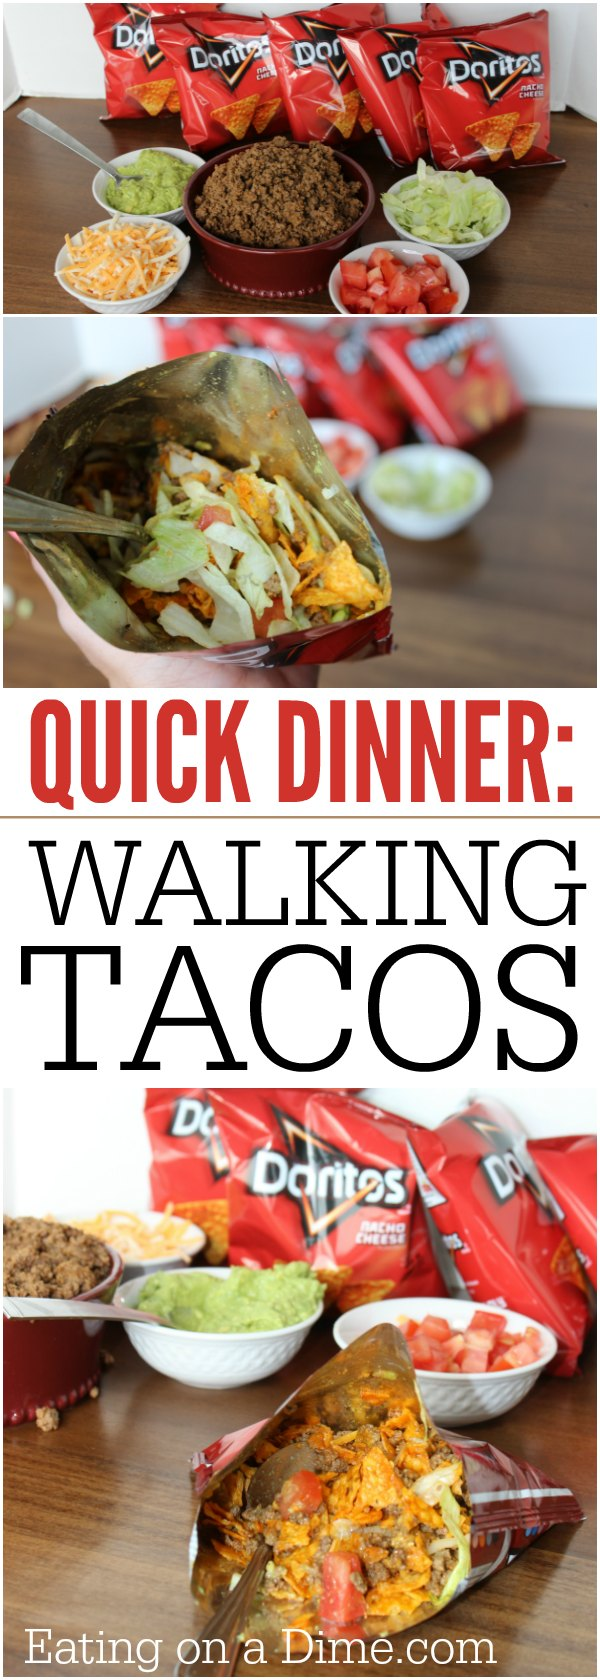 What is a walking taco? You are going to love this walking tacos recipe. It is easy to make and the entire family loves Walking tacos. Learn how to make a walking taco. We love making a walking taco bar for parties!